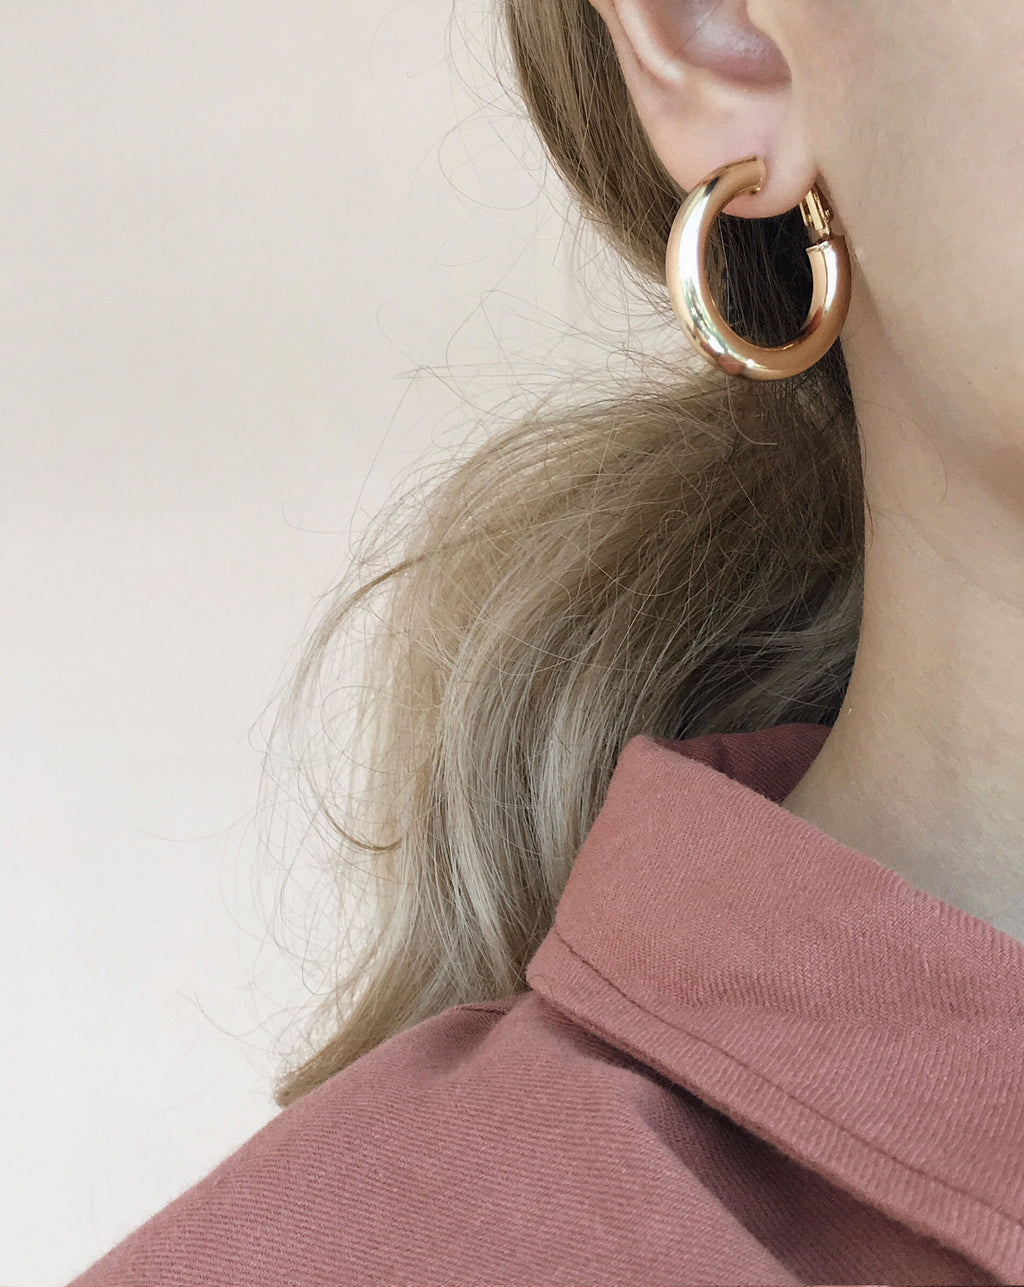 28mm gold hoops perfect on its own or for layering - TheHexad